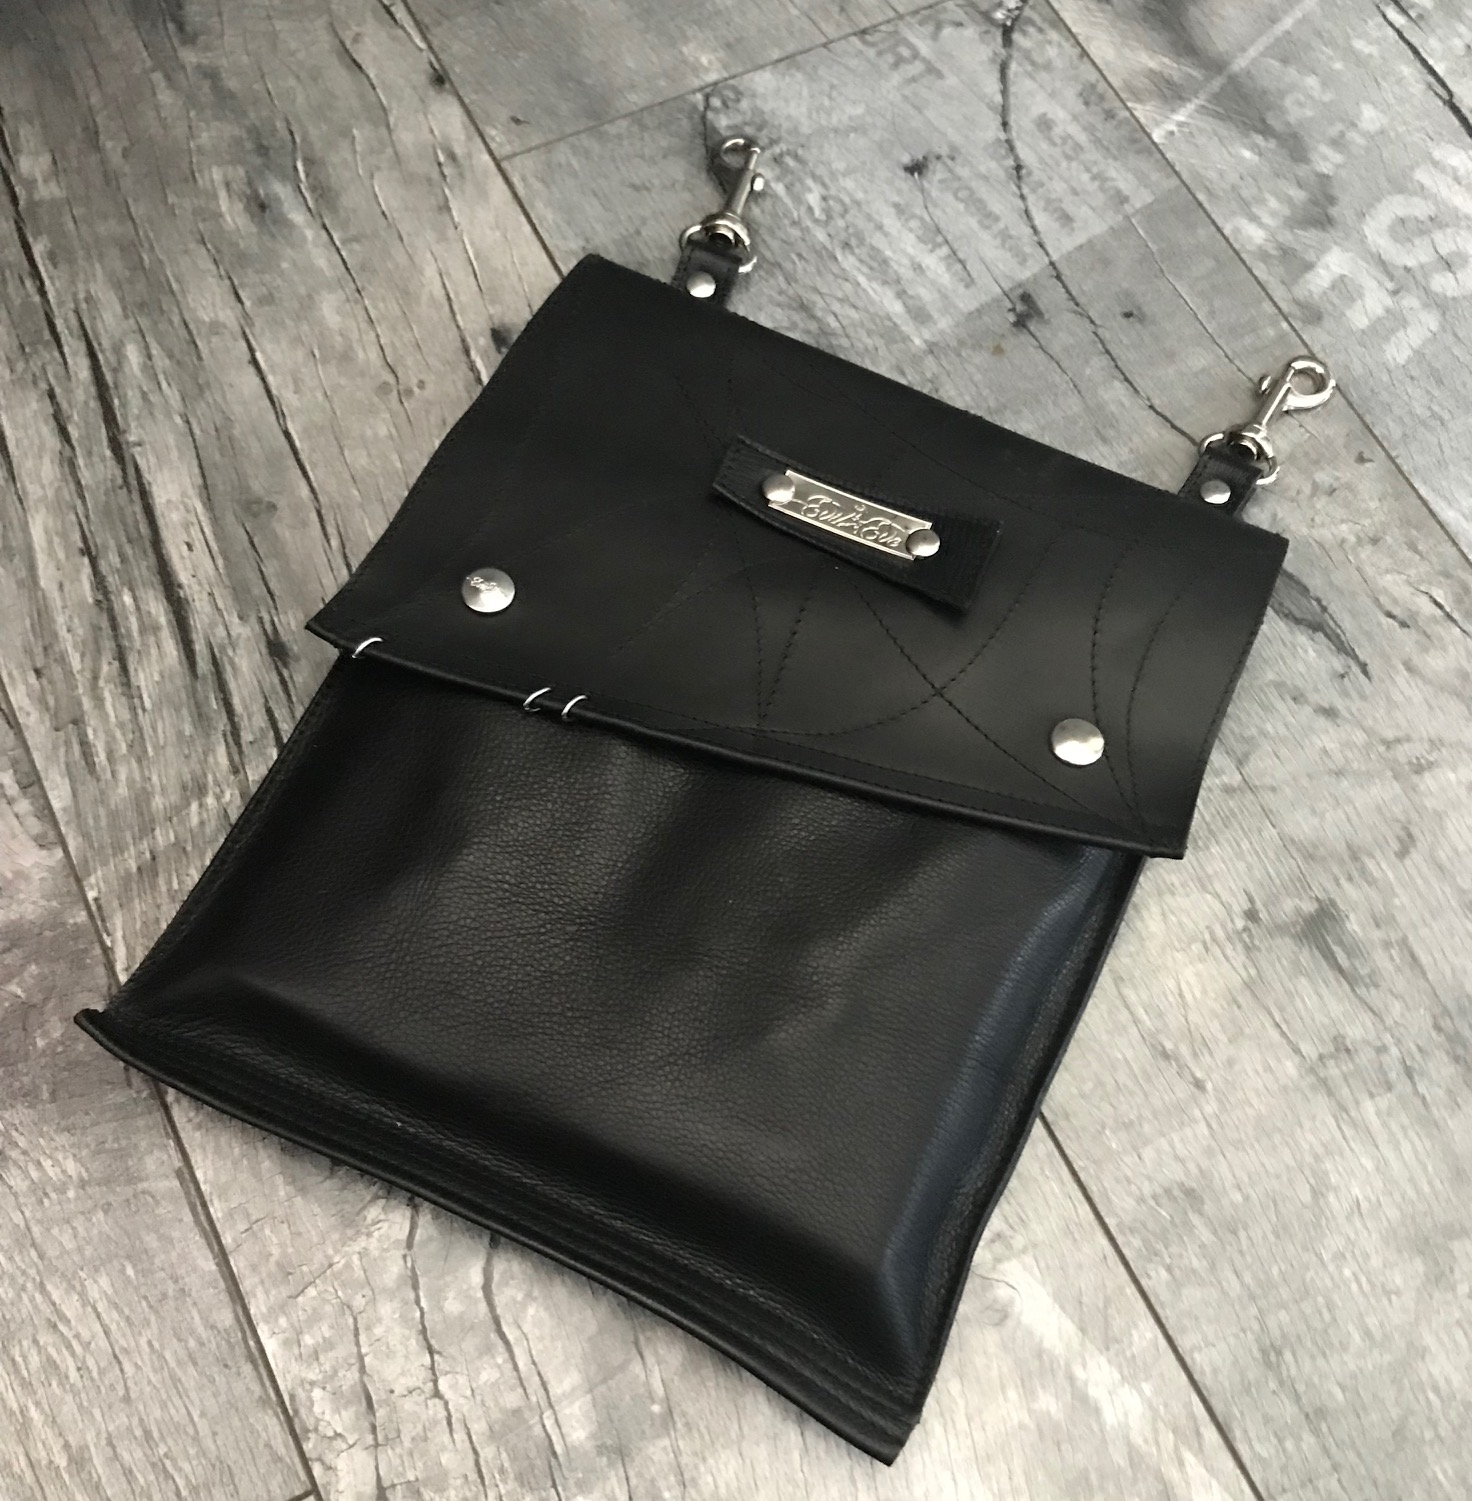 EvilEve hands free utility leather bag